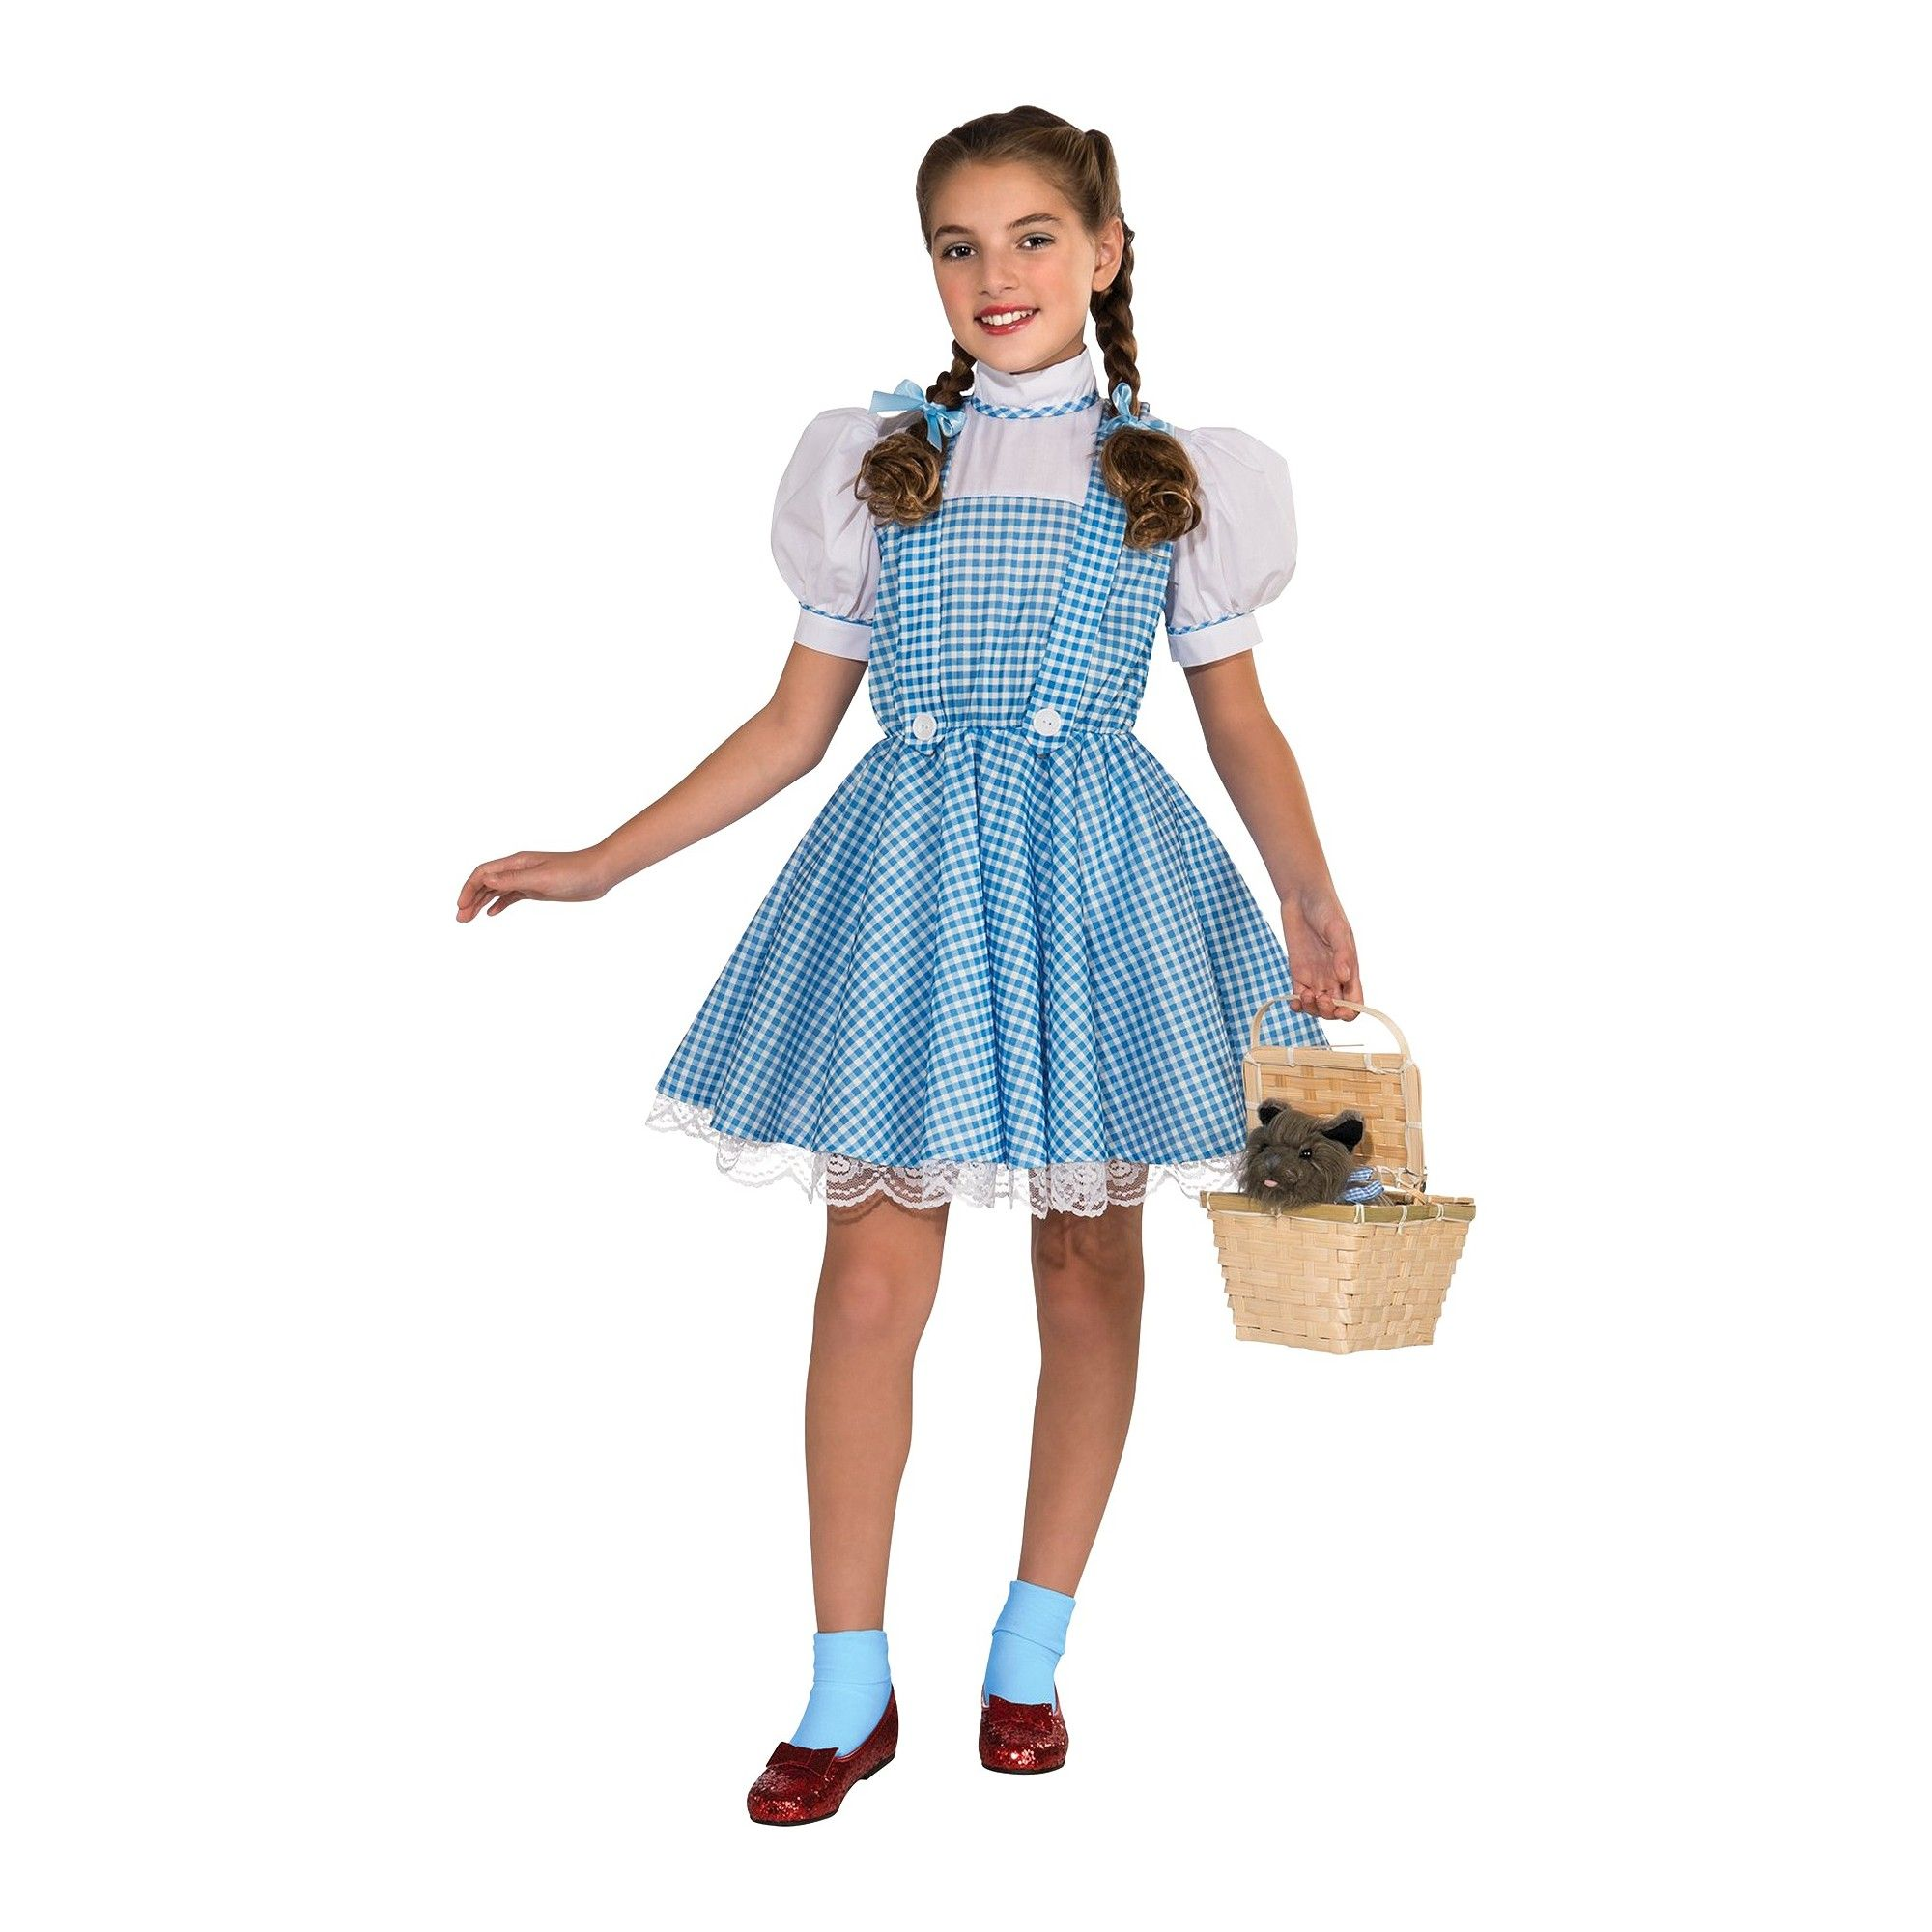 Halloween The Wizard of Oz Girlsu0027 Dorothy Costume Medium Size Variation Parent  sc 1 st  Pinterest & Halloween The Wizard of Oz Kidsu0027 Dorothy Costume Small (4-6) Girlu0027s ...